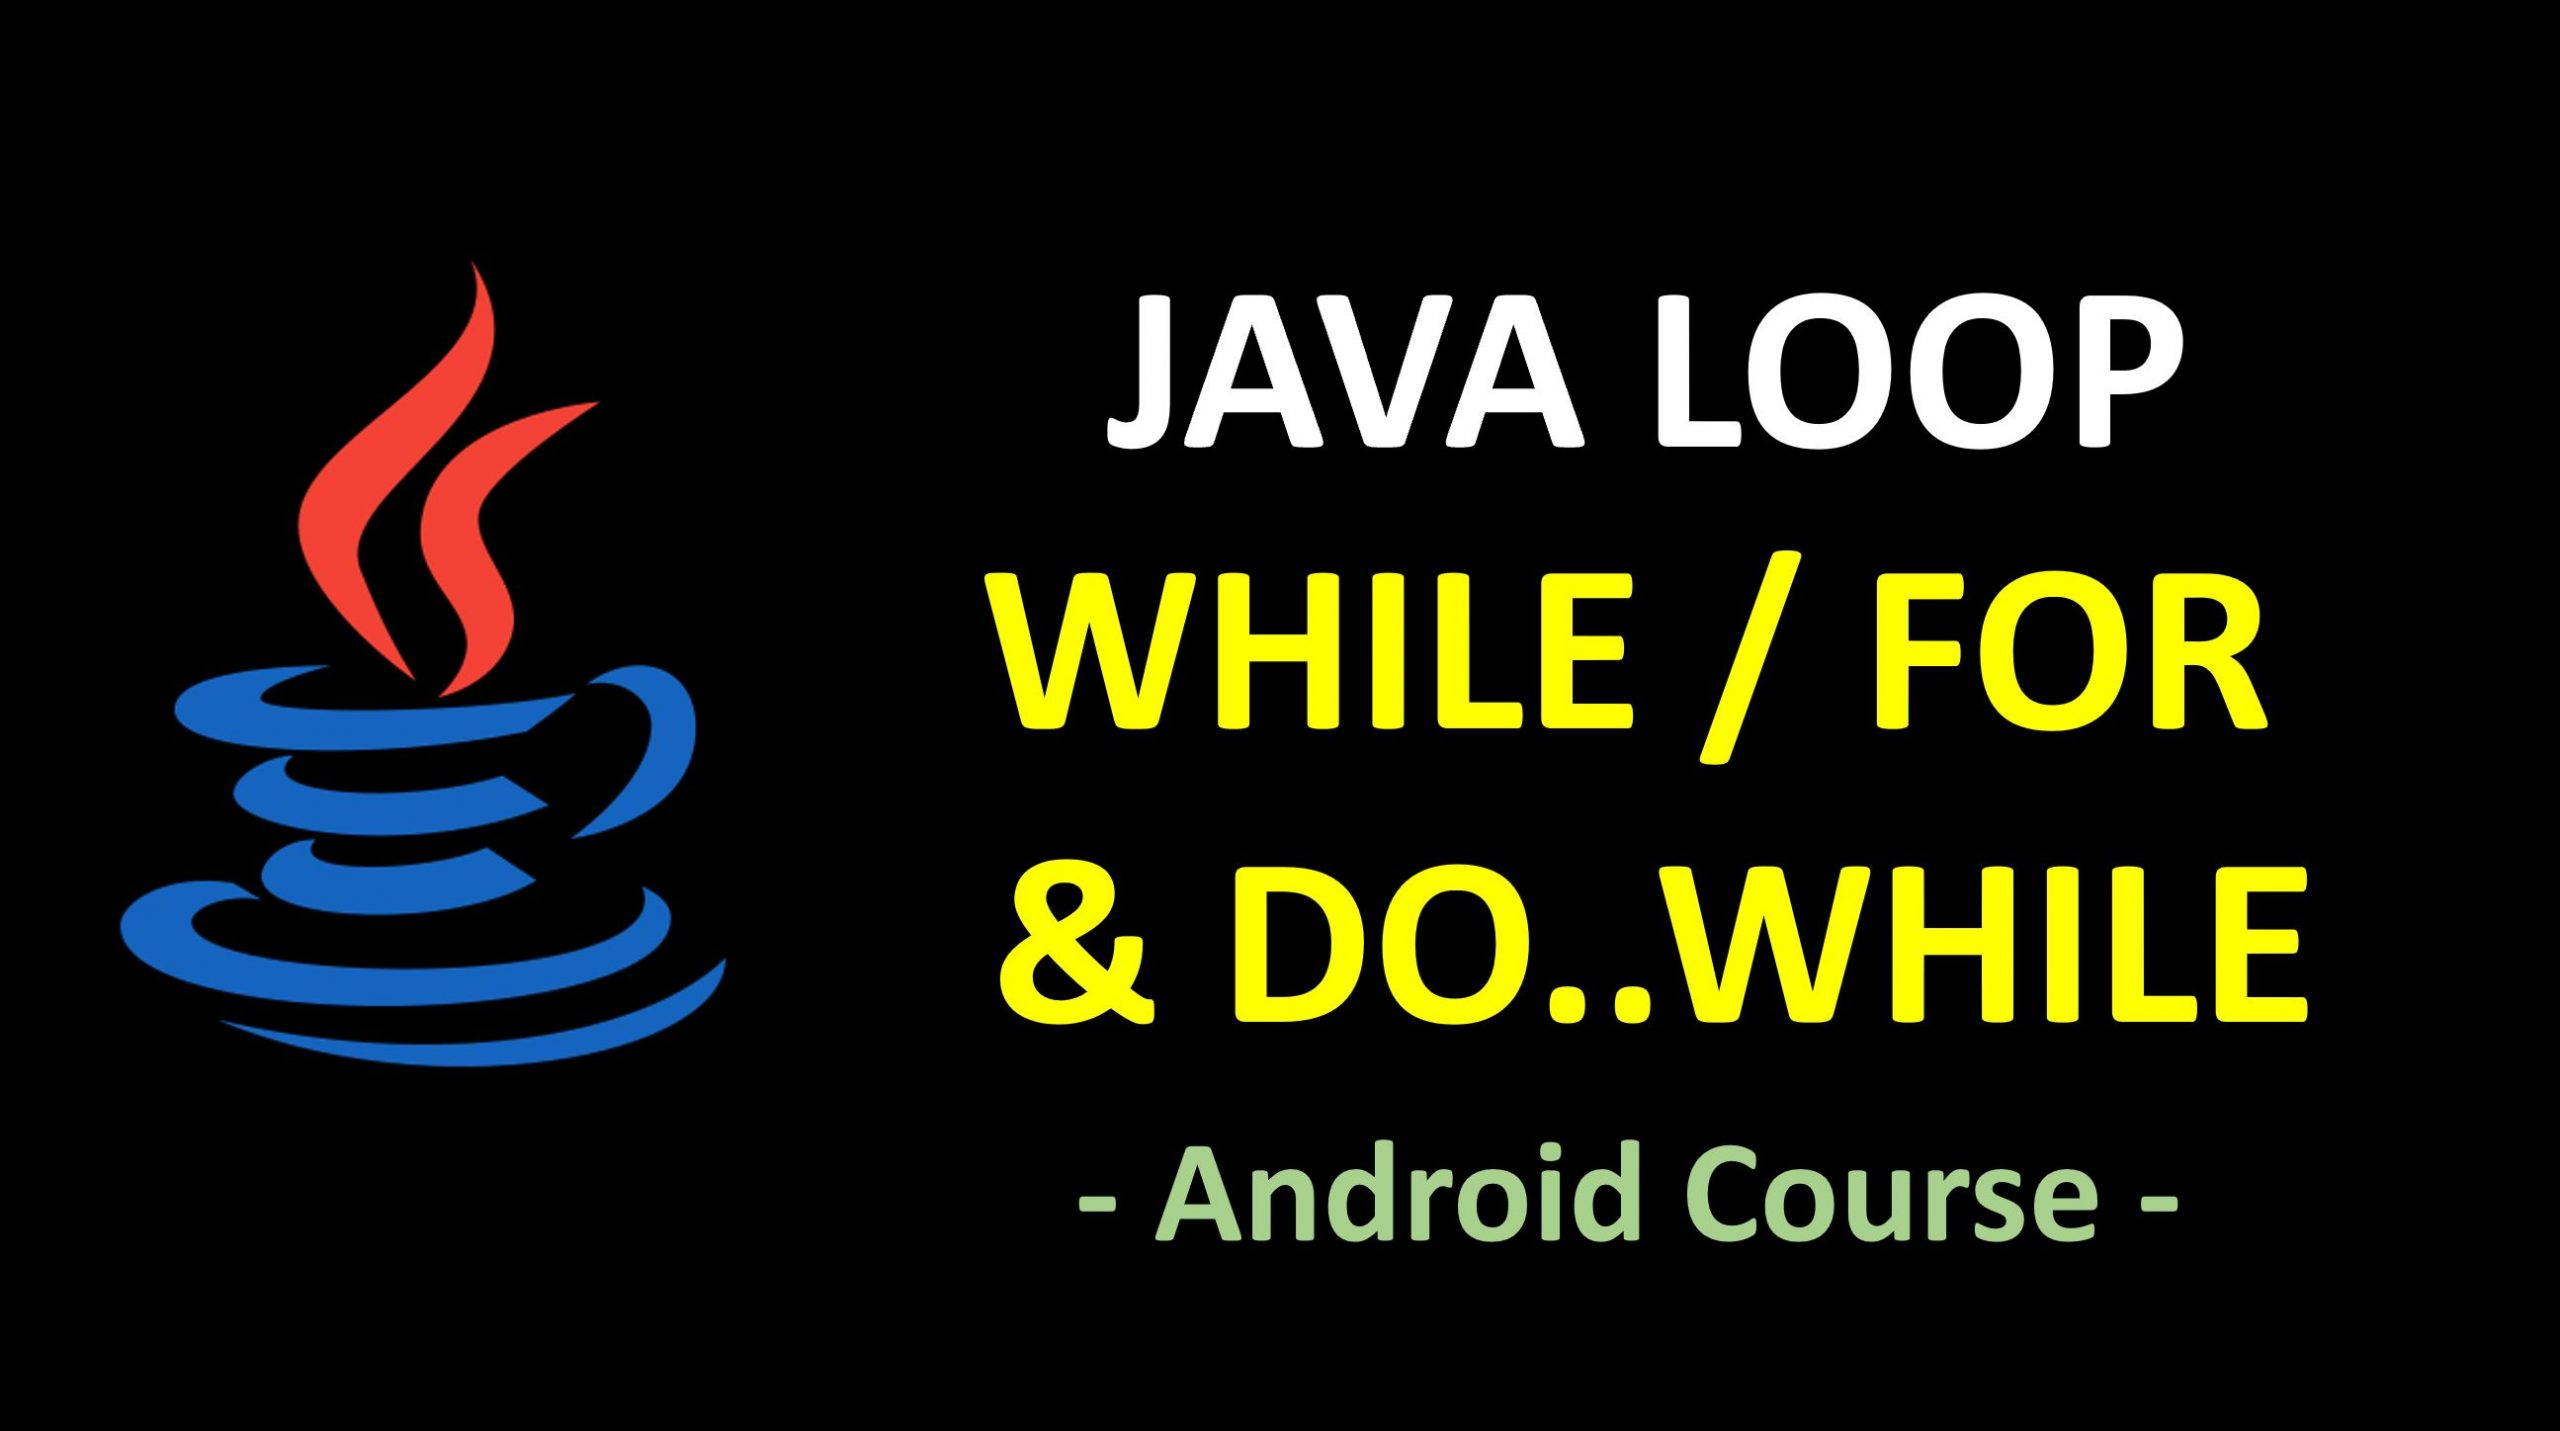 Android Course - How to use Loop in Java